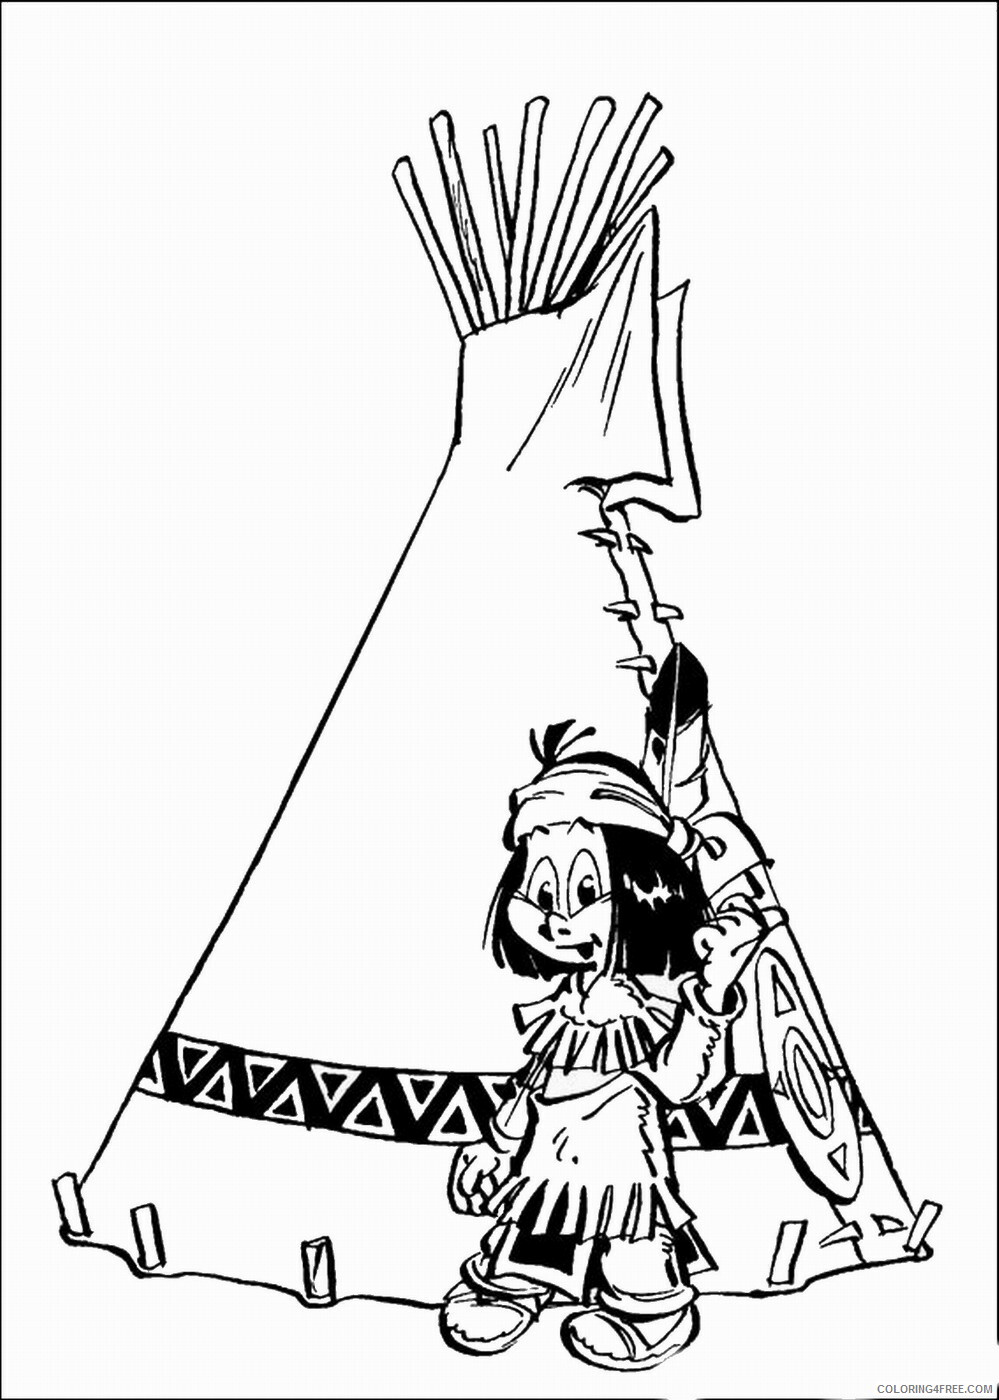 Indian Coloring Pages indians_24 Printable 2021 3549 Coloring4free